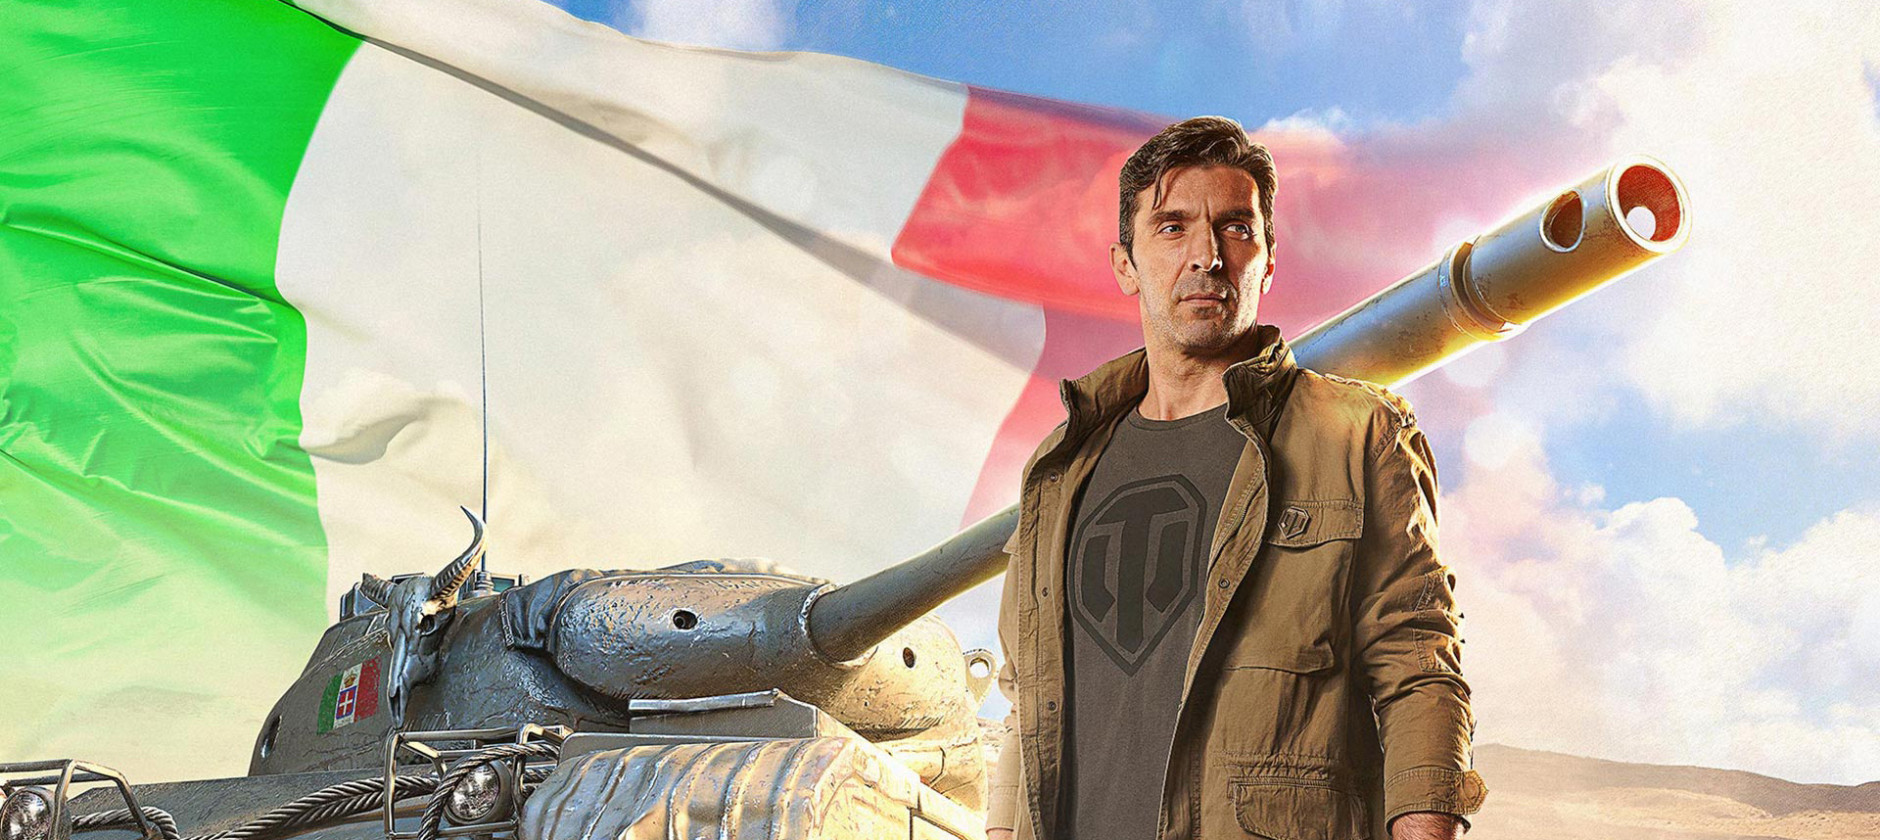 Gigi Buffon al comando di un carro armato in World of Tanks